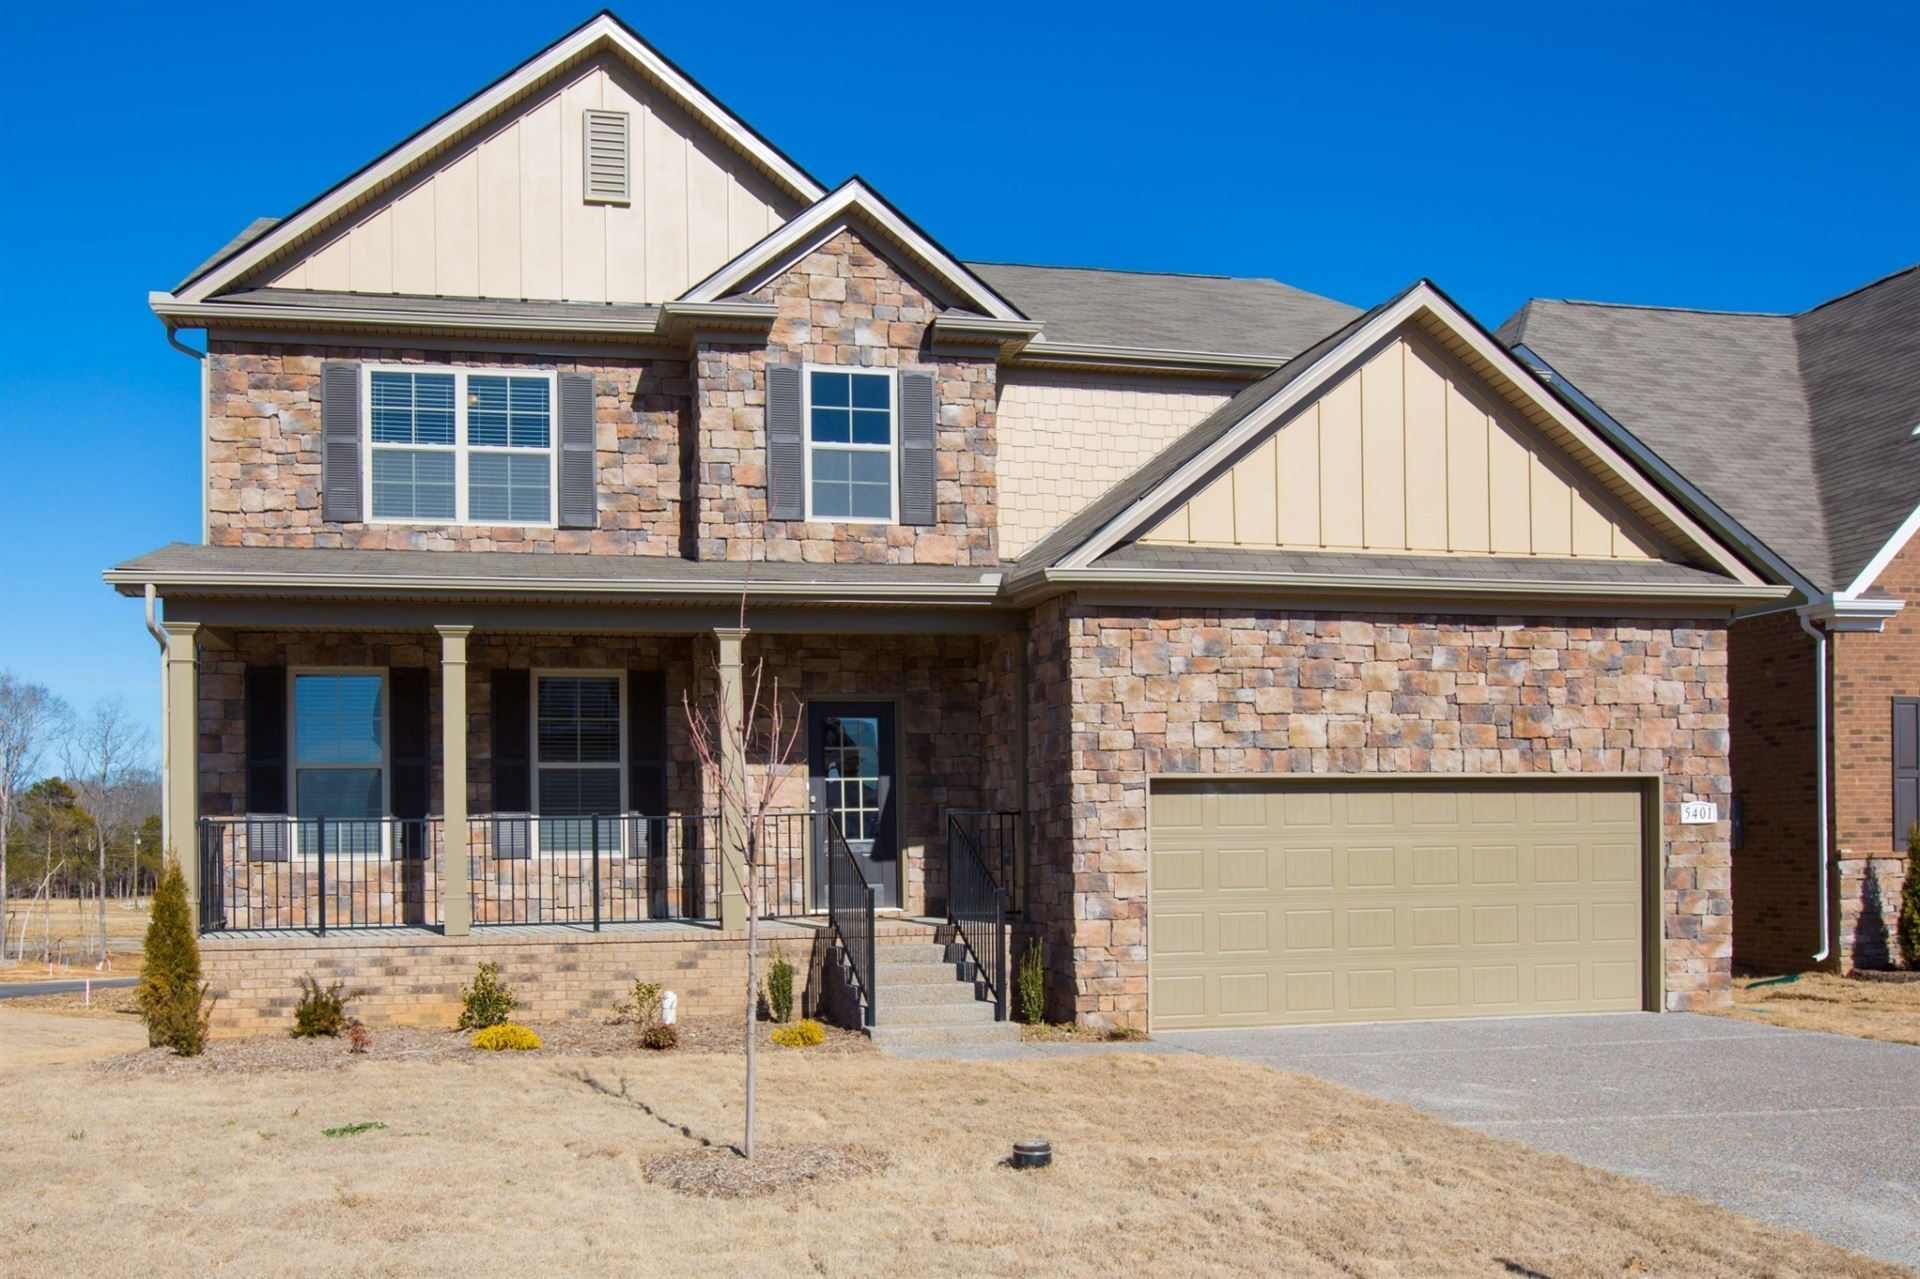 221 Greystone Way, Cookeville, TN 38501 - MLS#: 2300765